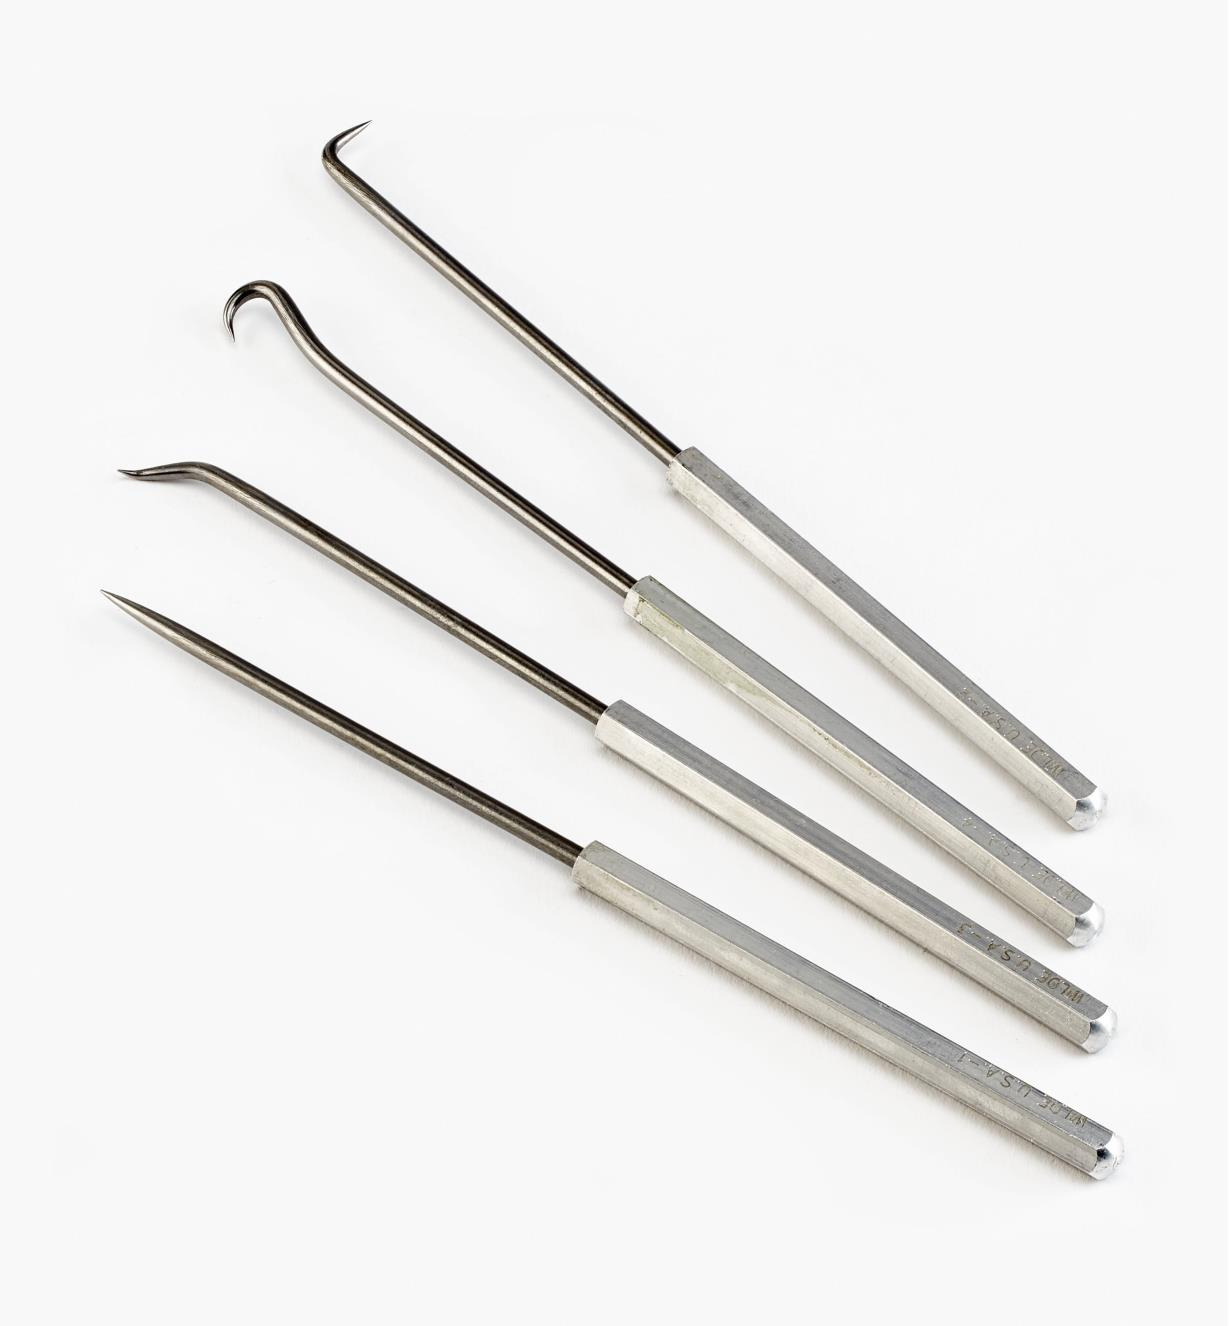 86K9510 - Hook & Pick Set, 4-piece